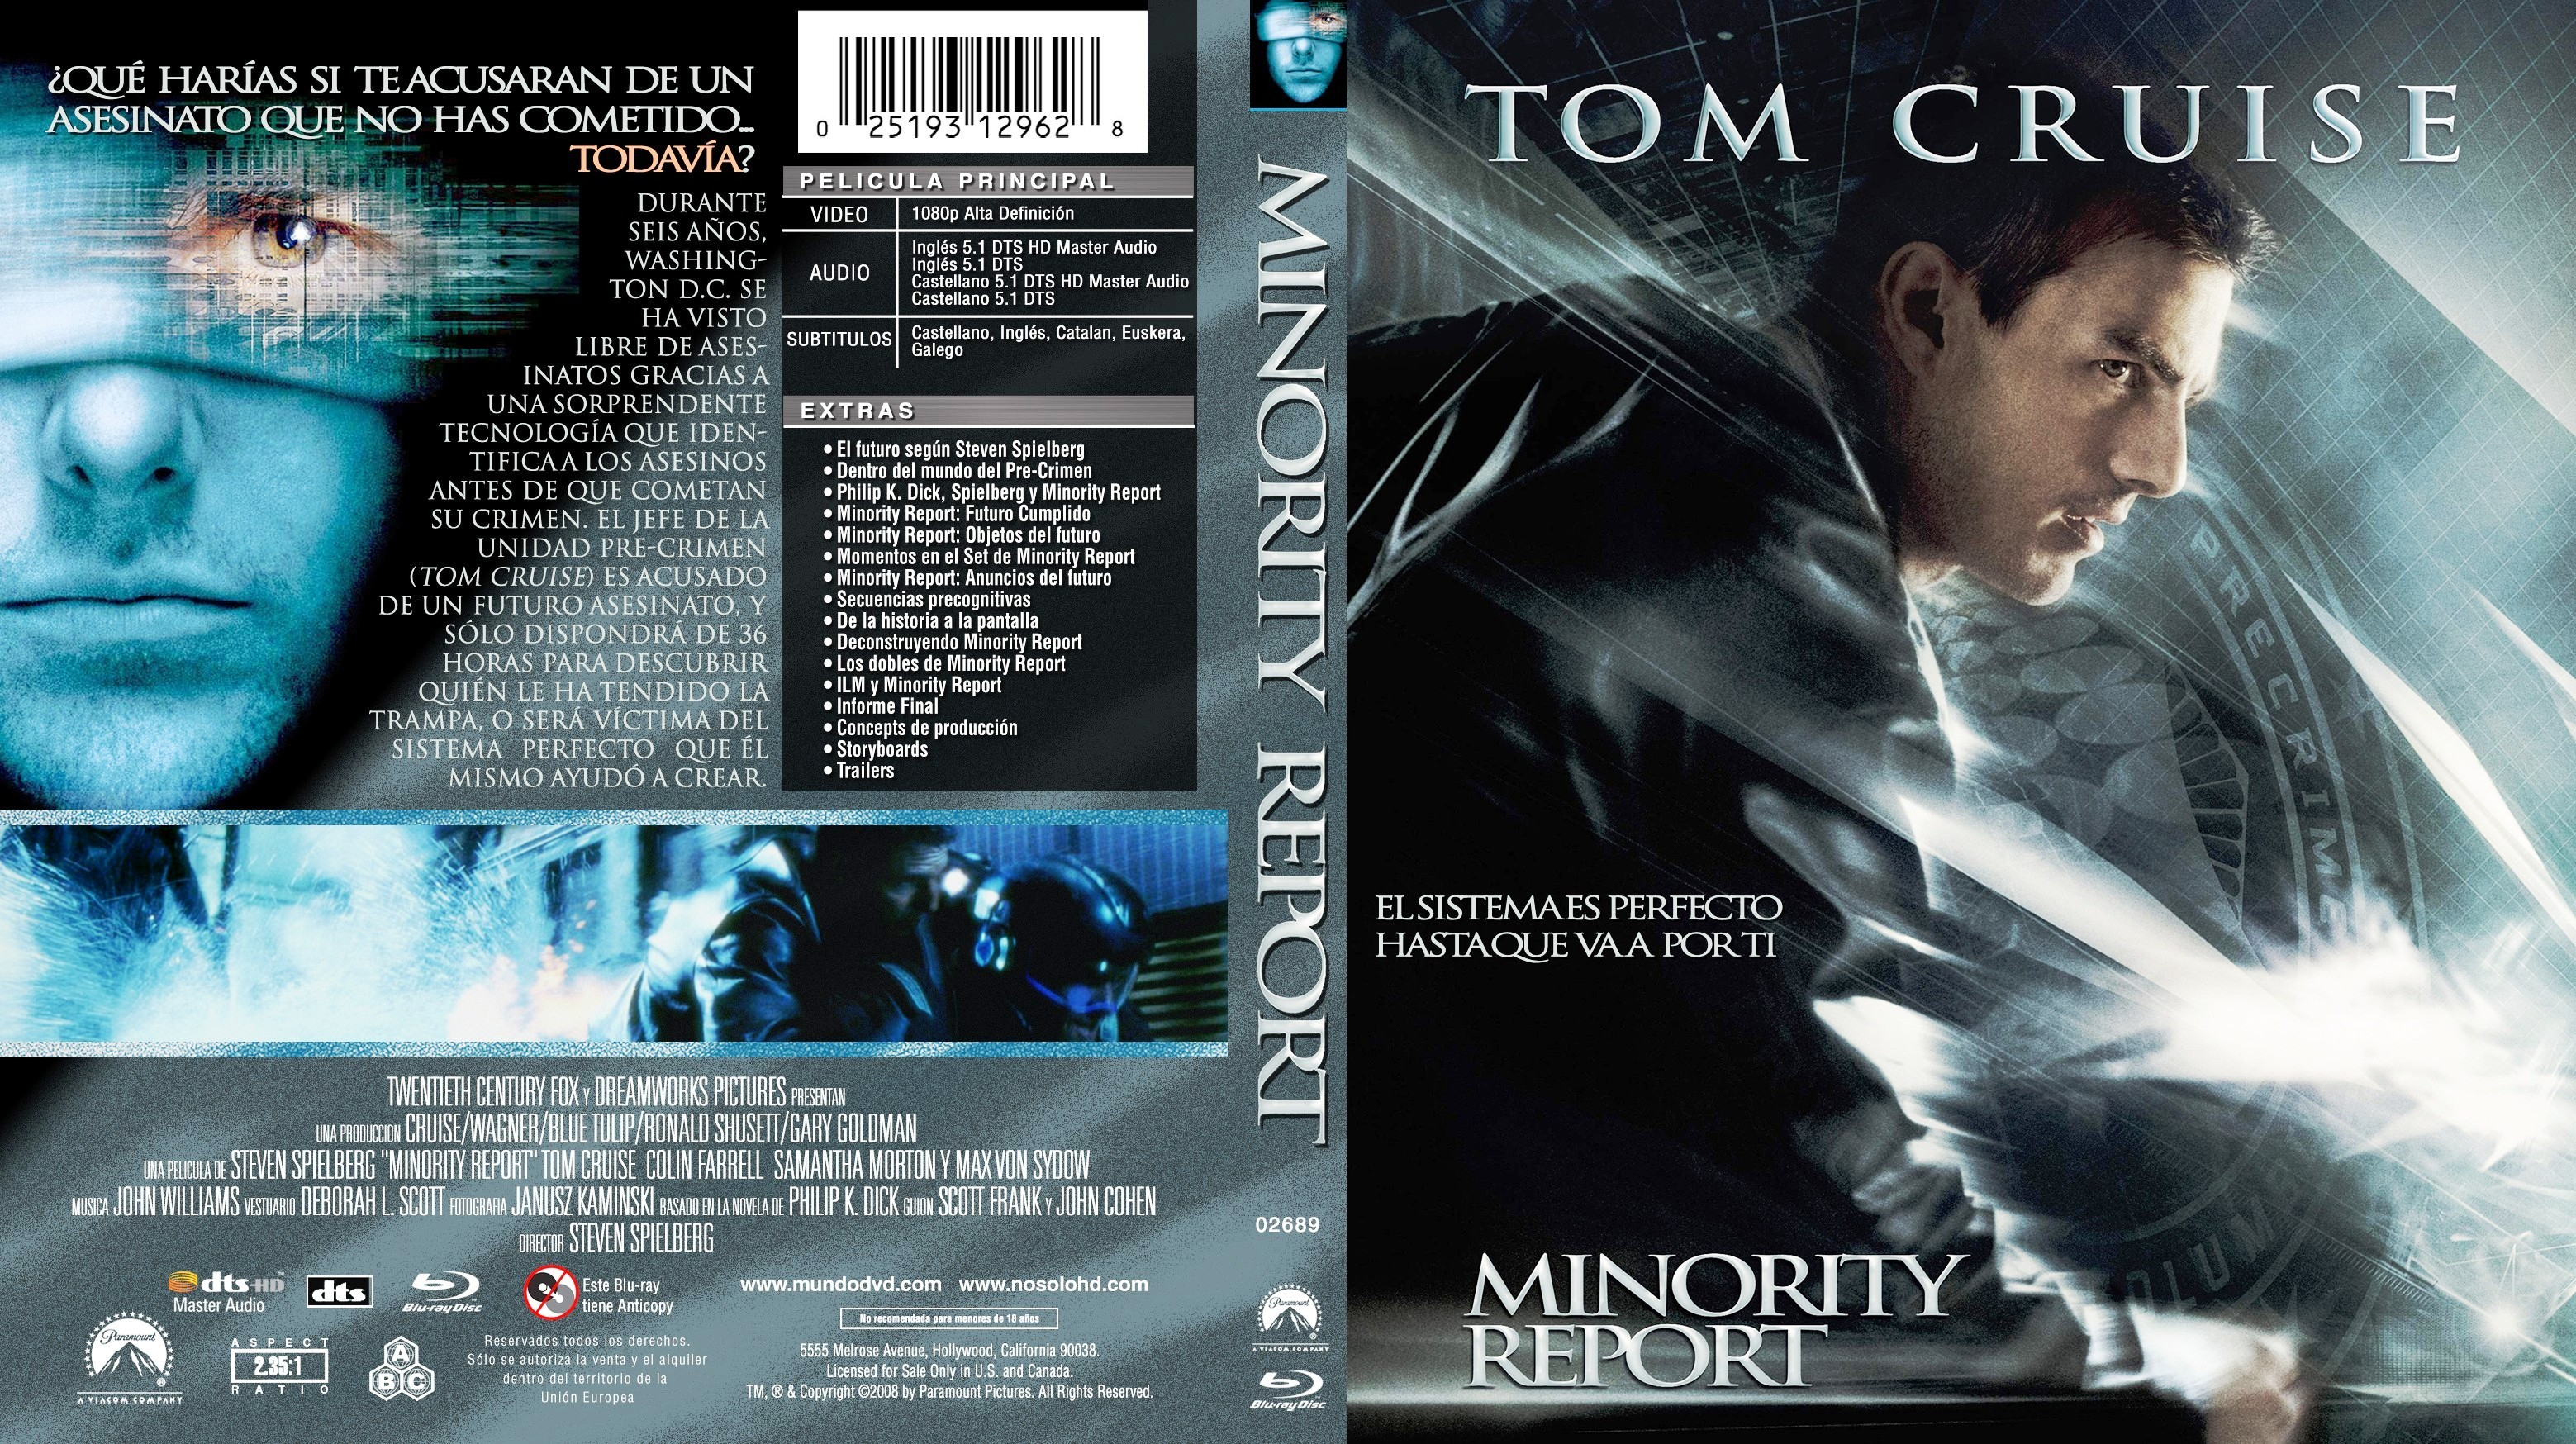 Covers Box Sk Minority Report 2002 High Quality Dvd Blueray Movie